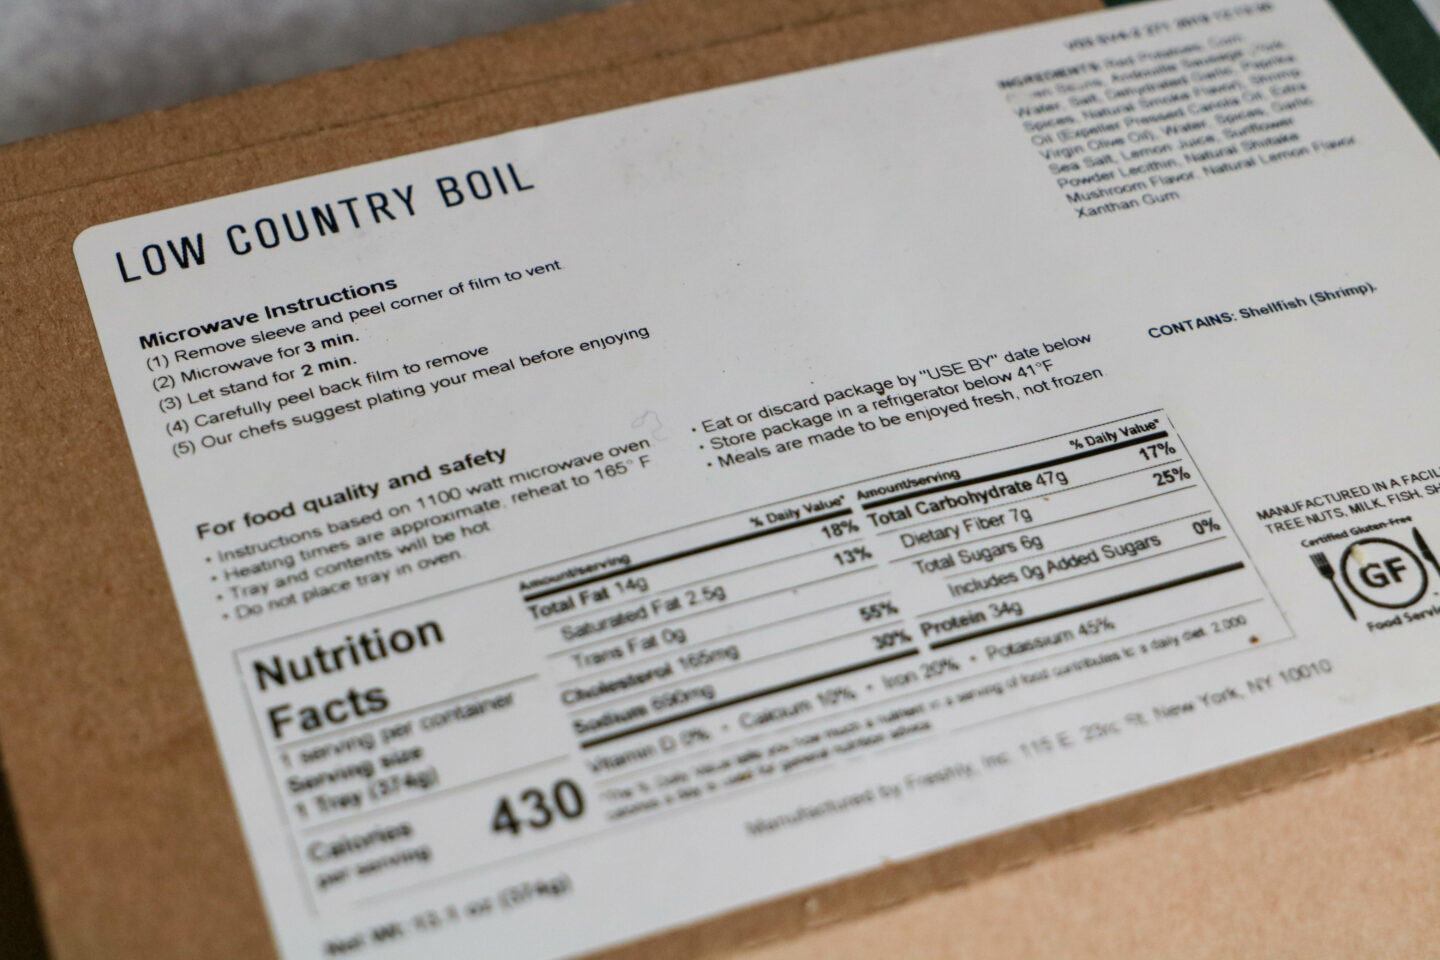 freshly low country boil instructions and nutrition facts